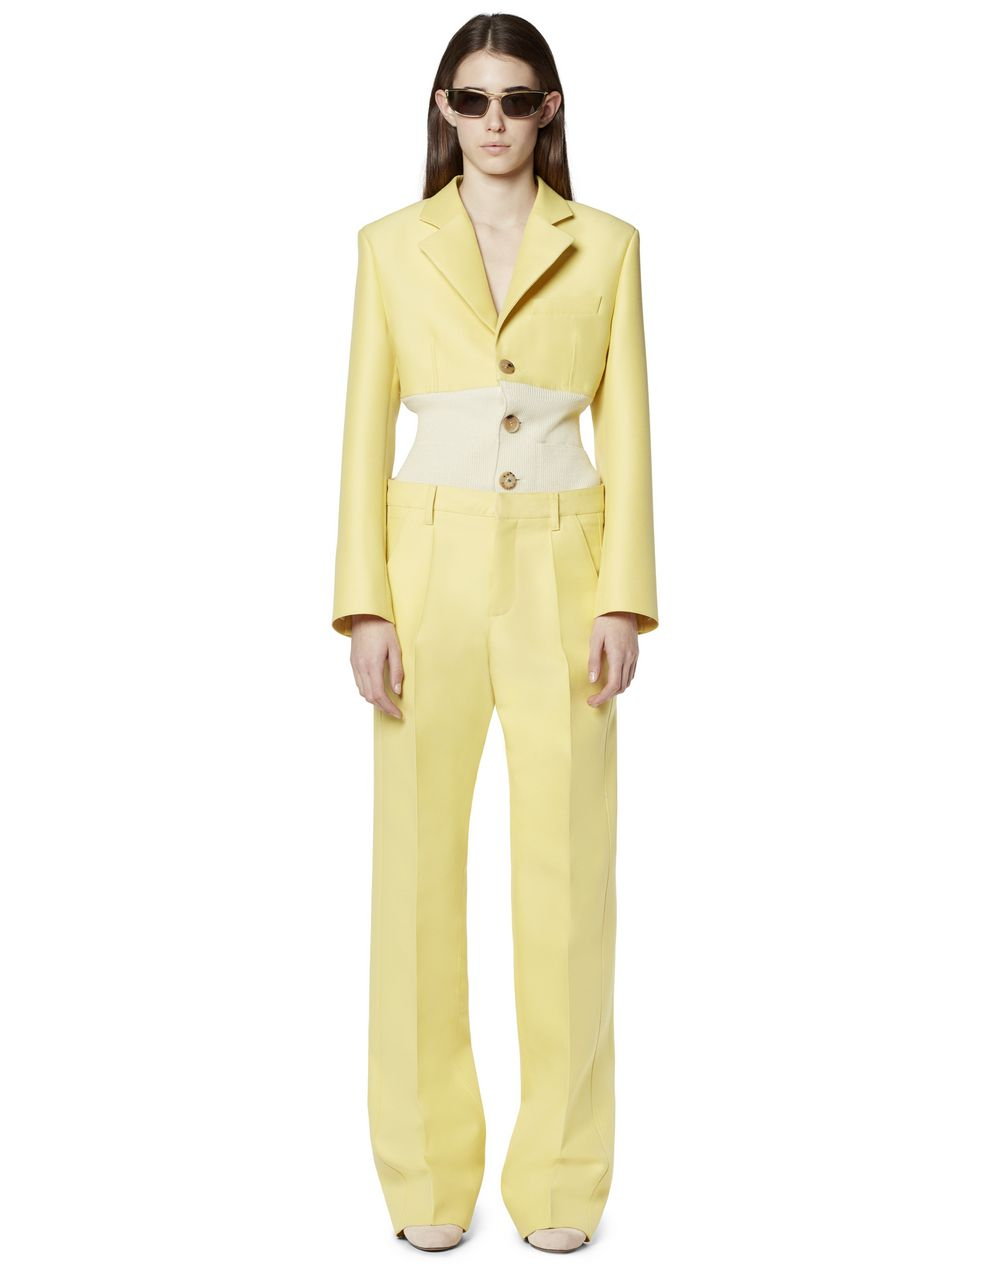 COTTON AND SILK TUXEDO PANTS - Lanvin